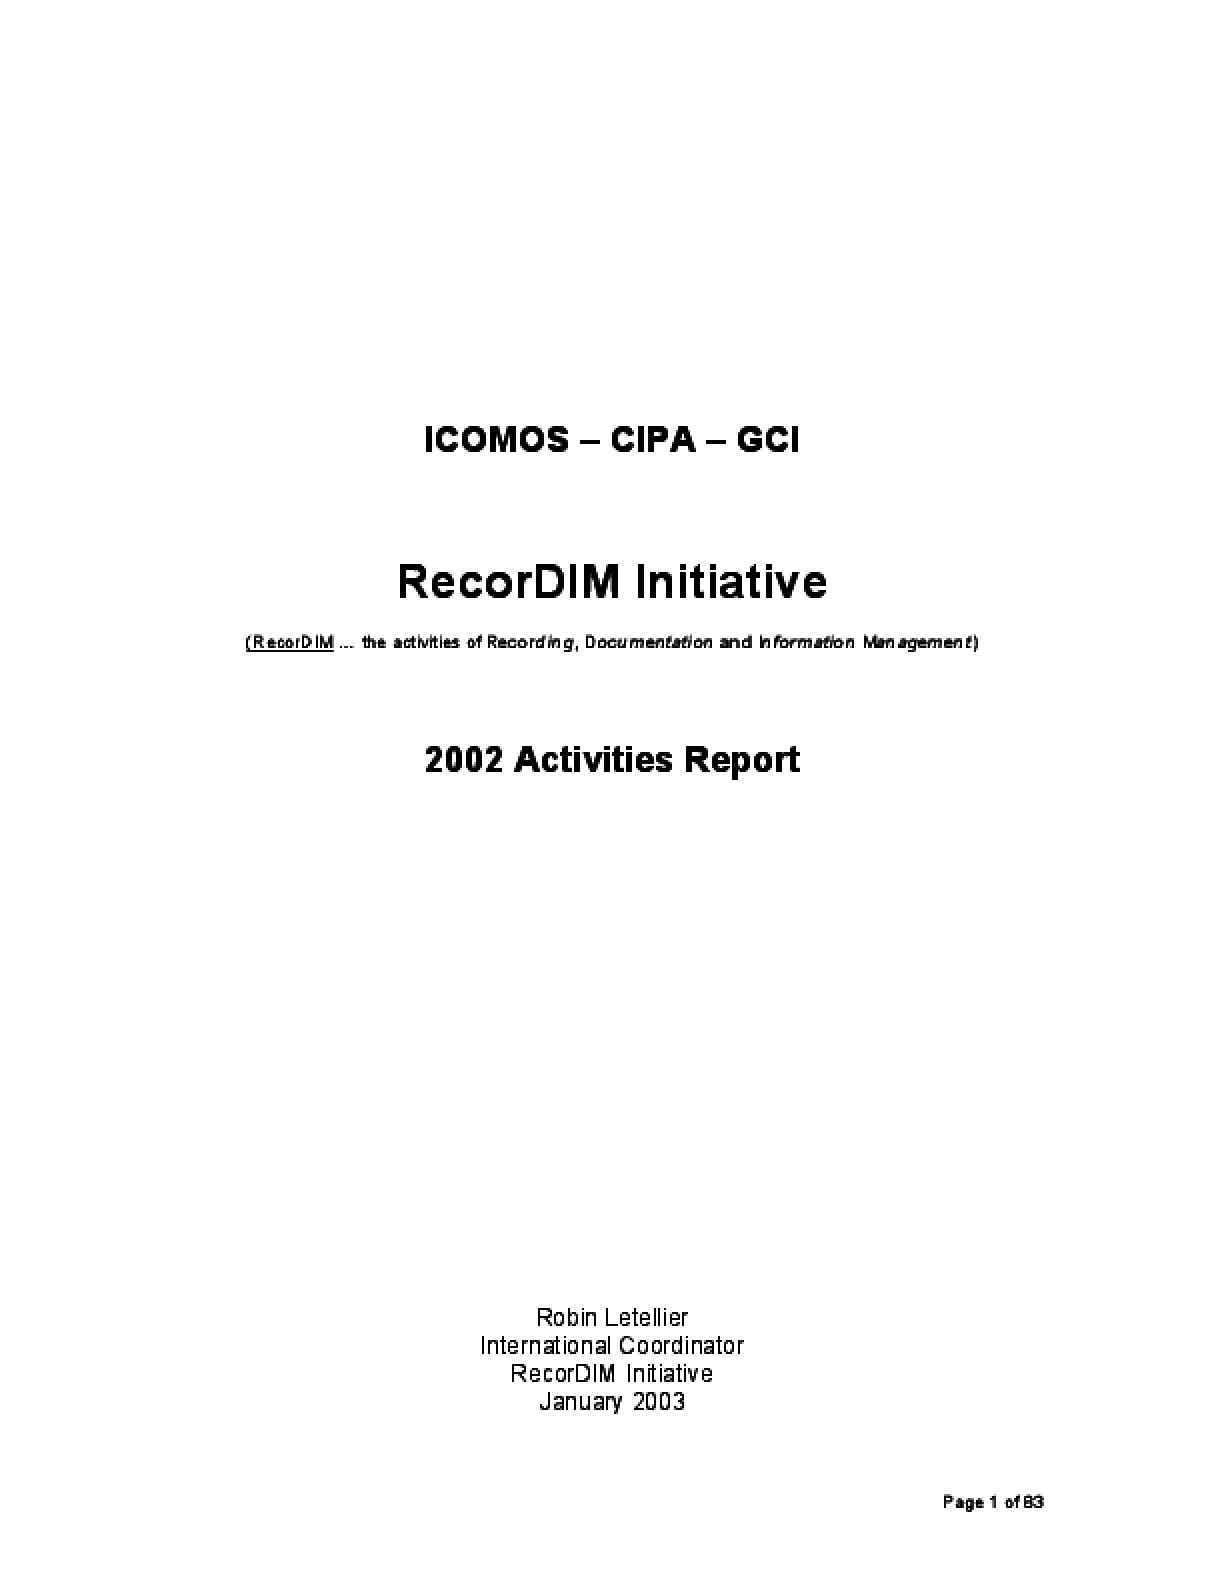 RecorDIM 2002 Activities Report